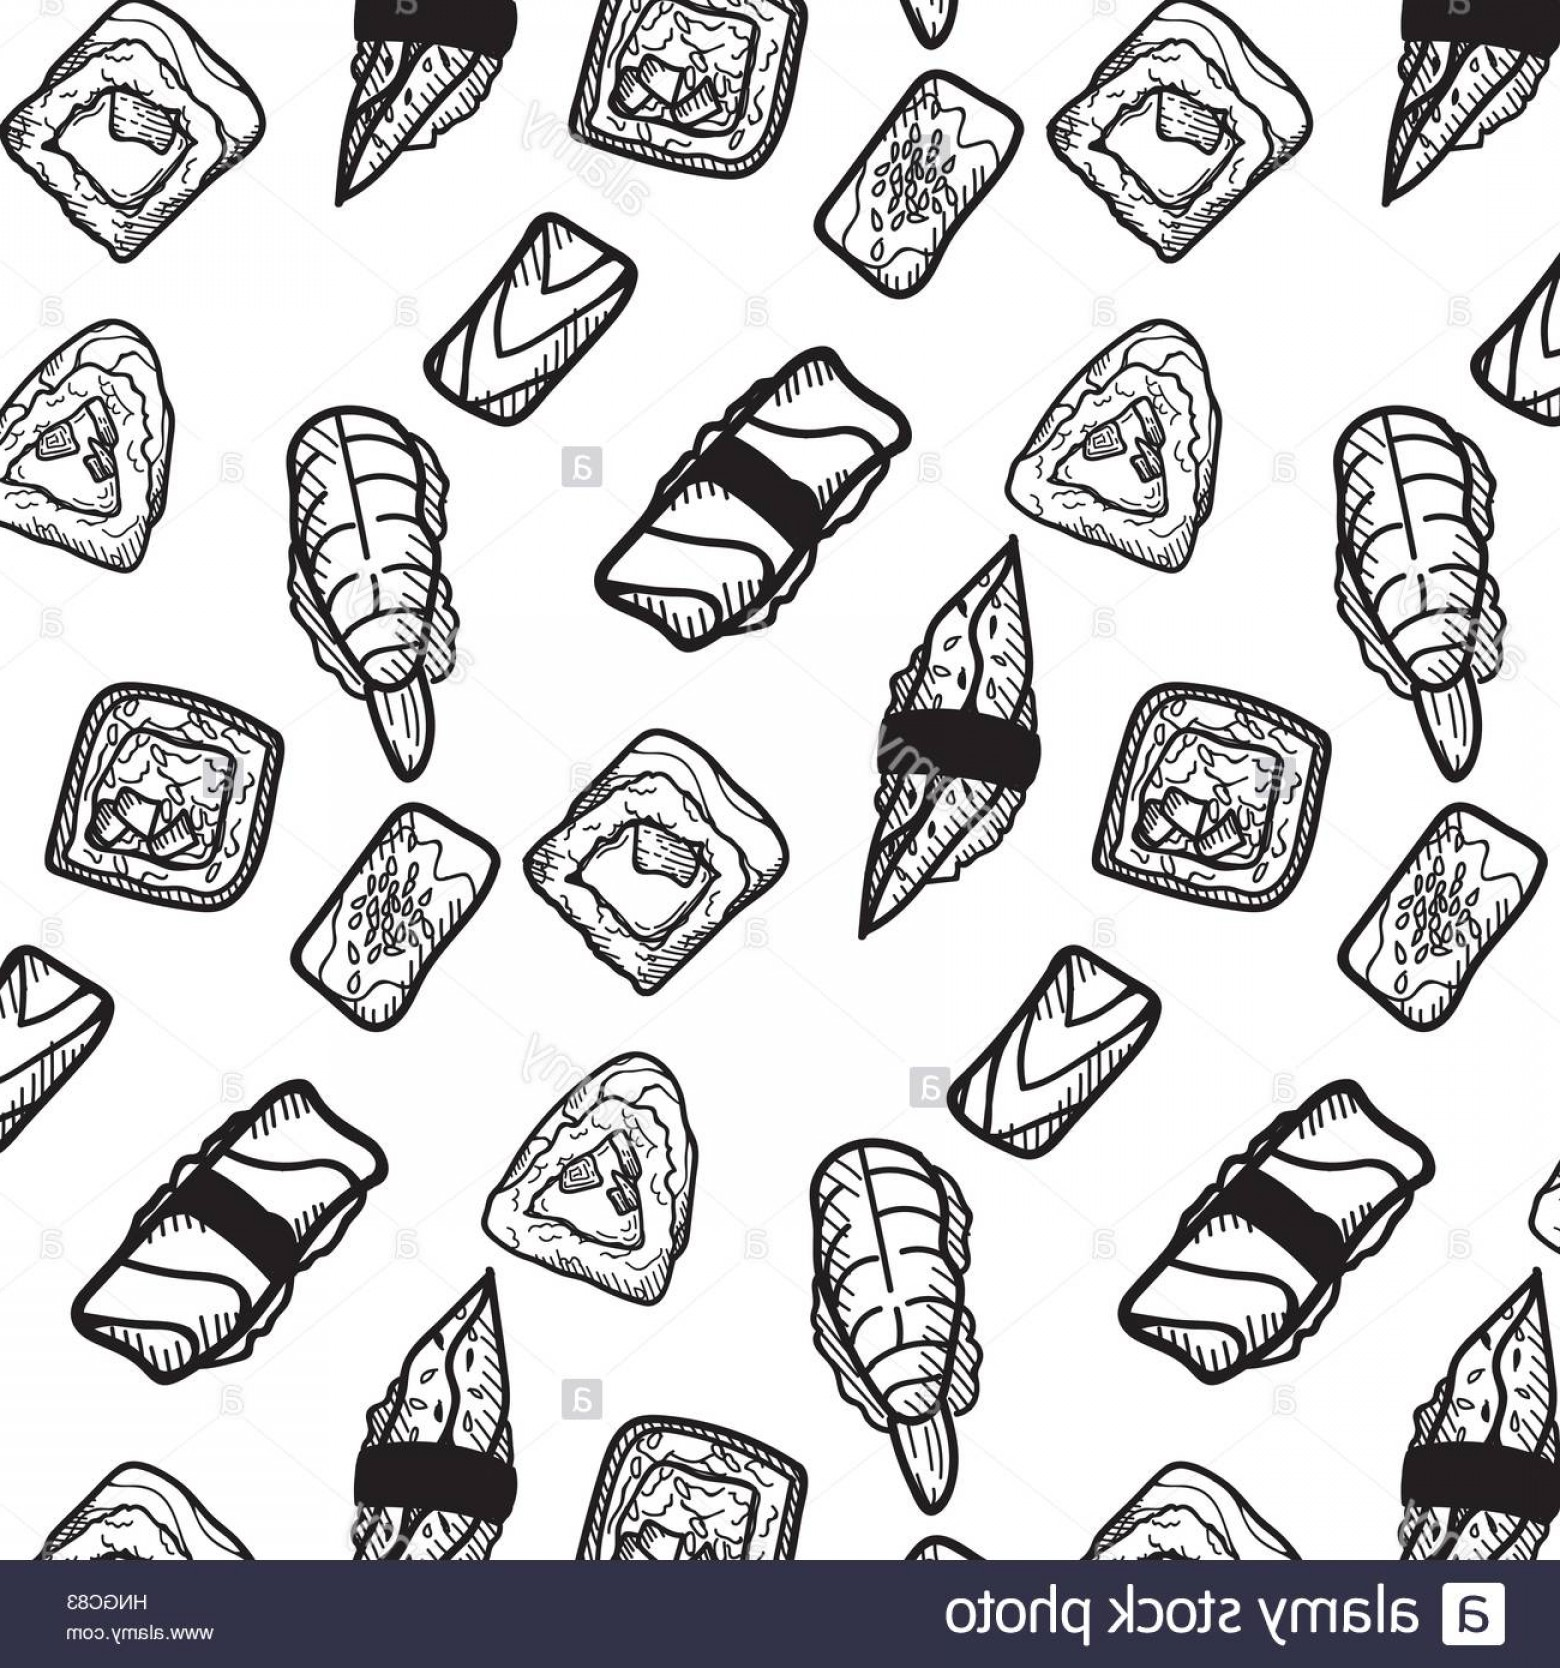 Sushi Vector Art: Stock Photo Sushi Vector Sketch Set Hand Drawn Design Elements